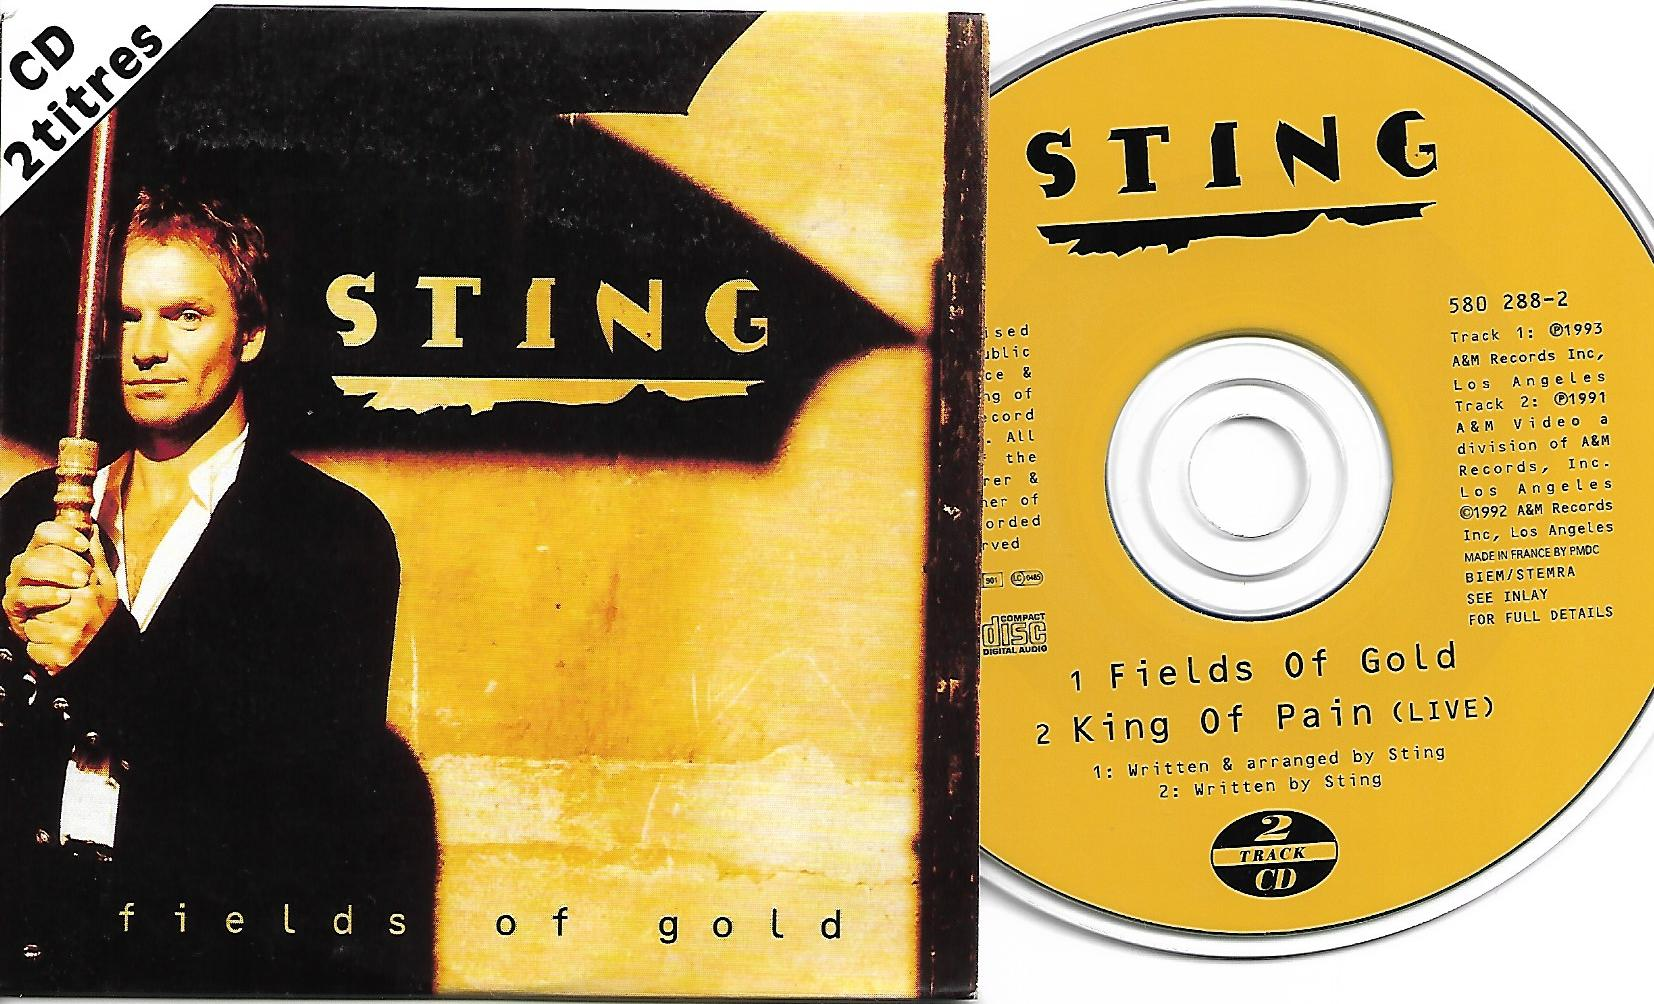 STING - Fields Of Gold Card Sleeve 2-track